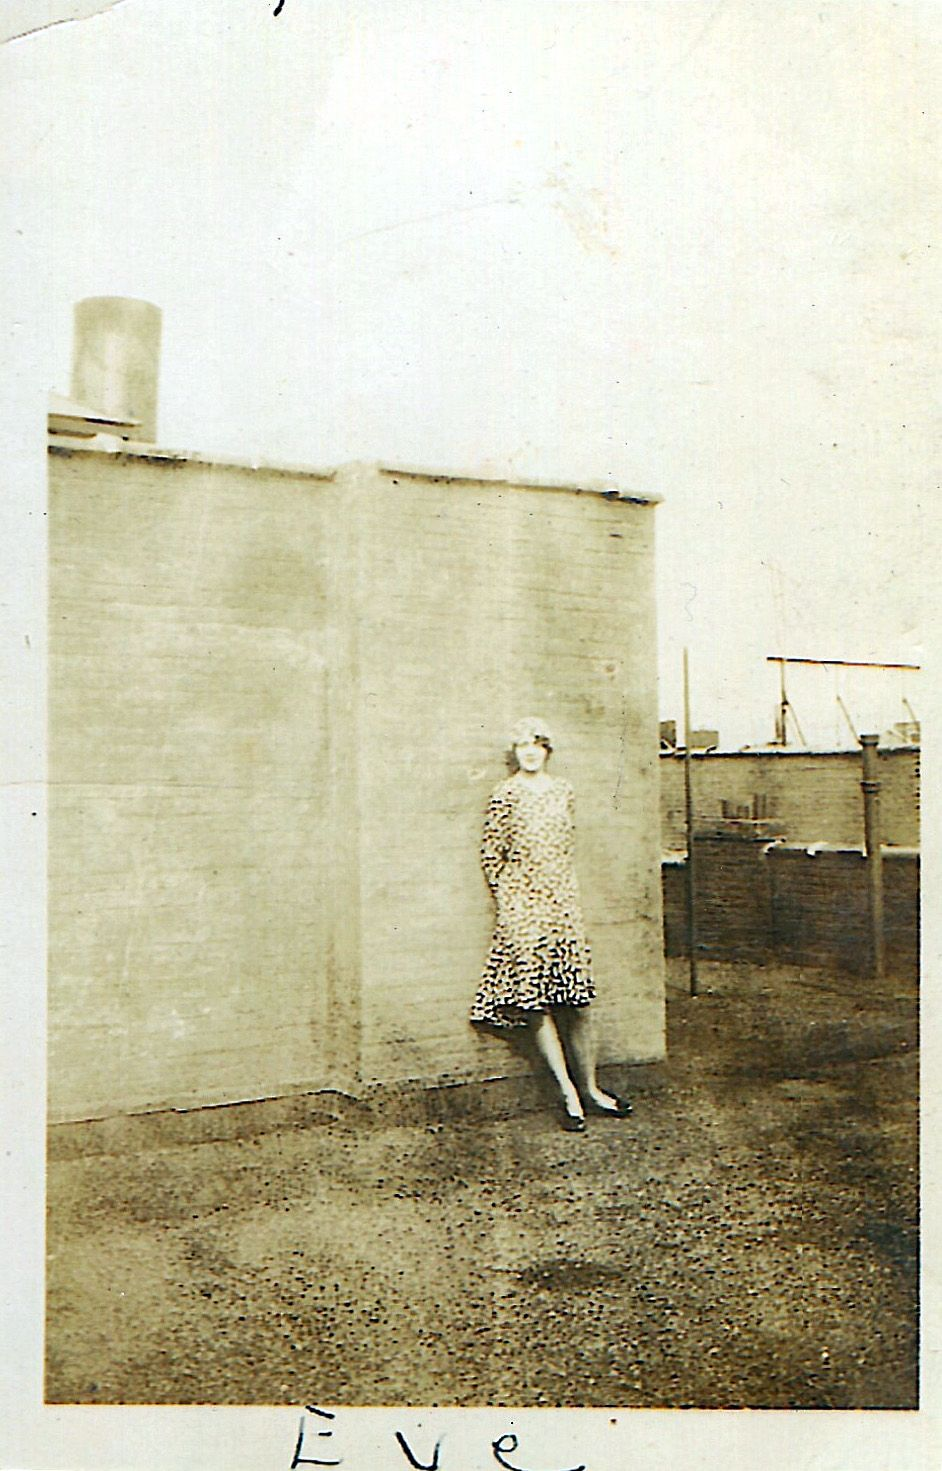 """My mom, Evelyn Lunden Heyer on the rooftop of an apartment in Brooklyn, NY @1930Mary Ann Heyer Sprankle (macs43@comcast.netAnyone know why other people's submissions show up as """"New York City Vintage"""" submitted?"""